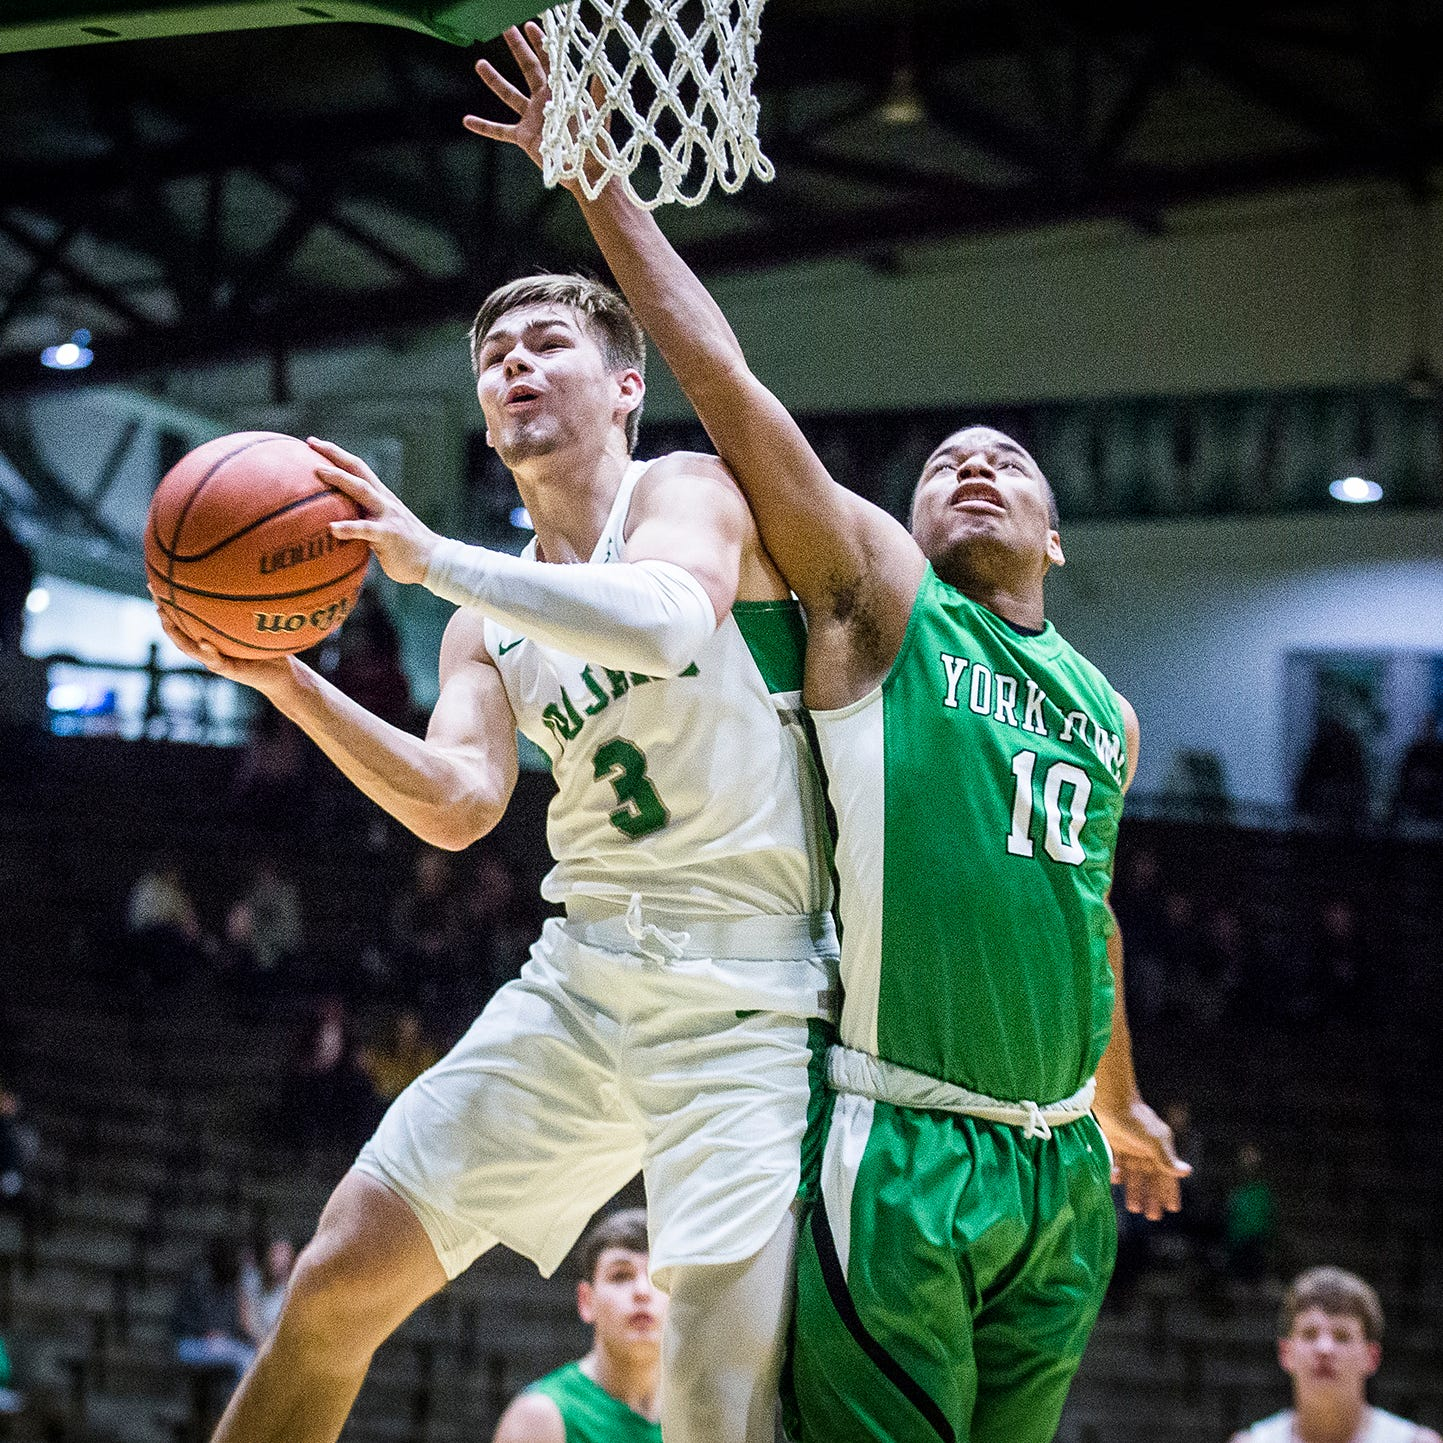 New Castle's Luke Bumbalough makes Indiana All-Stars; Gillis an honorary member